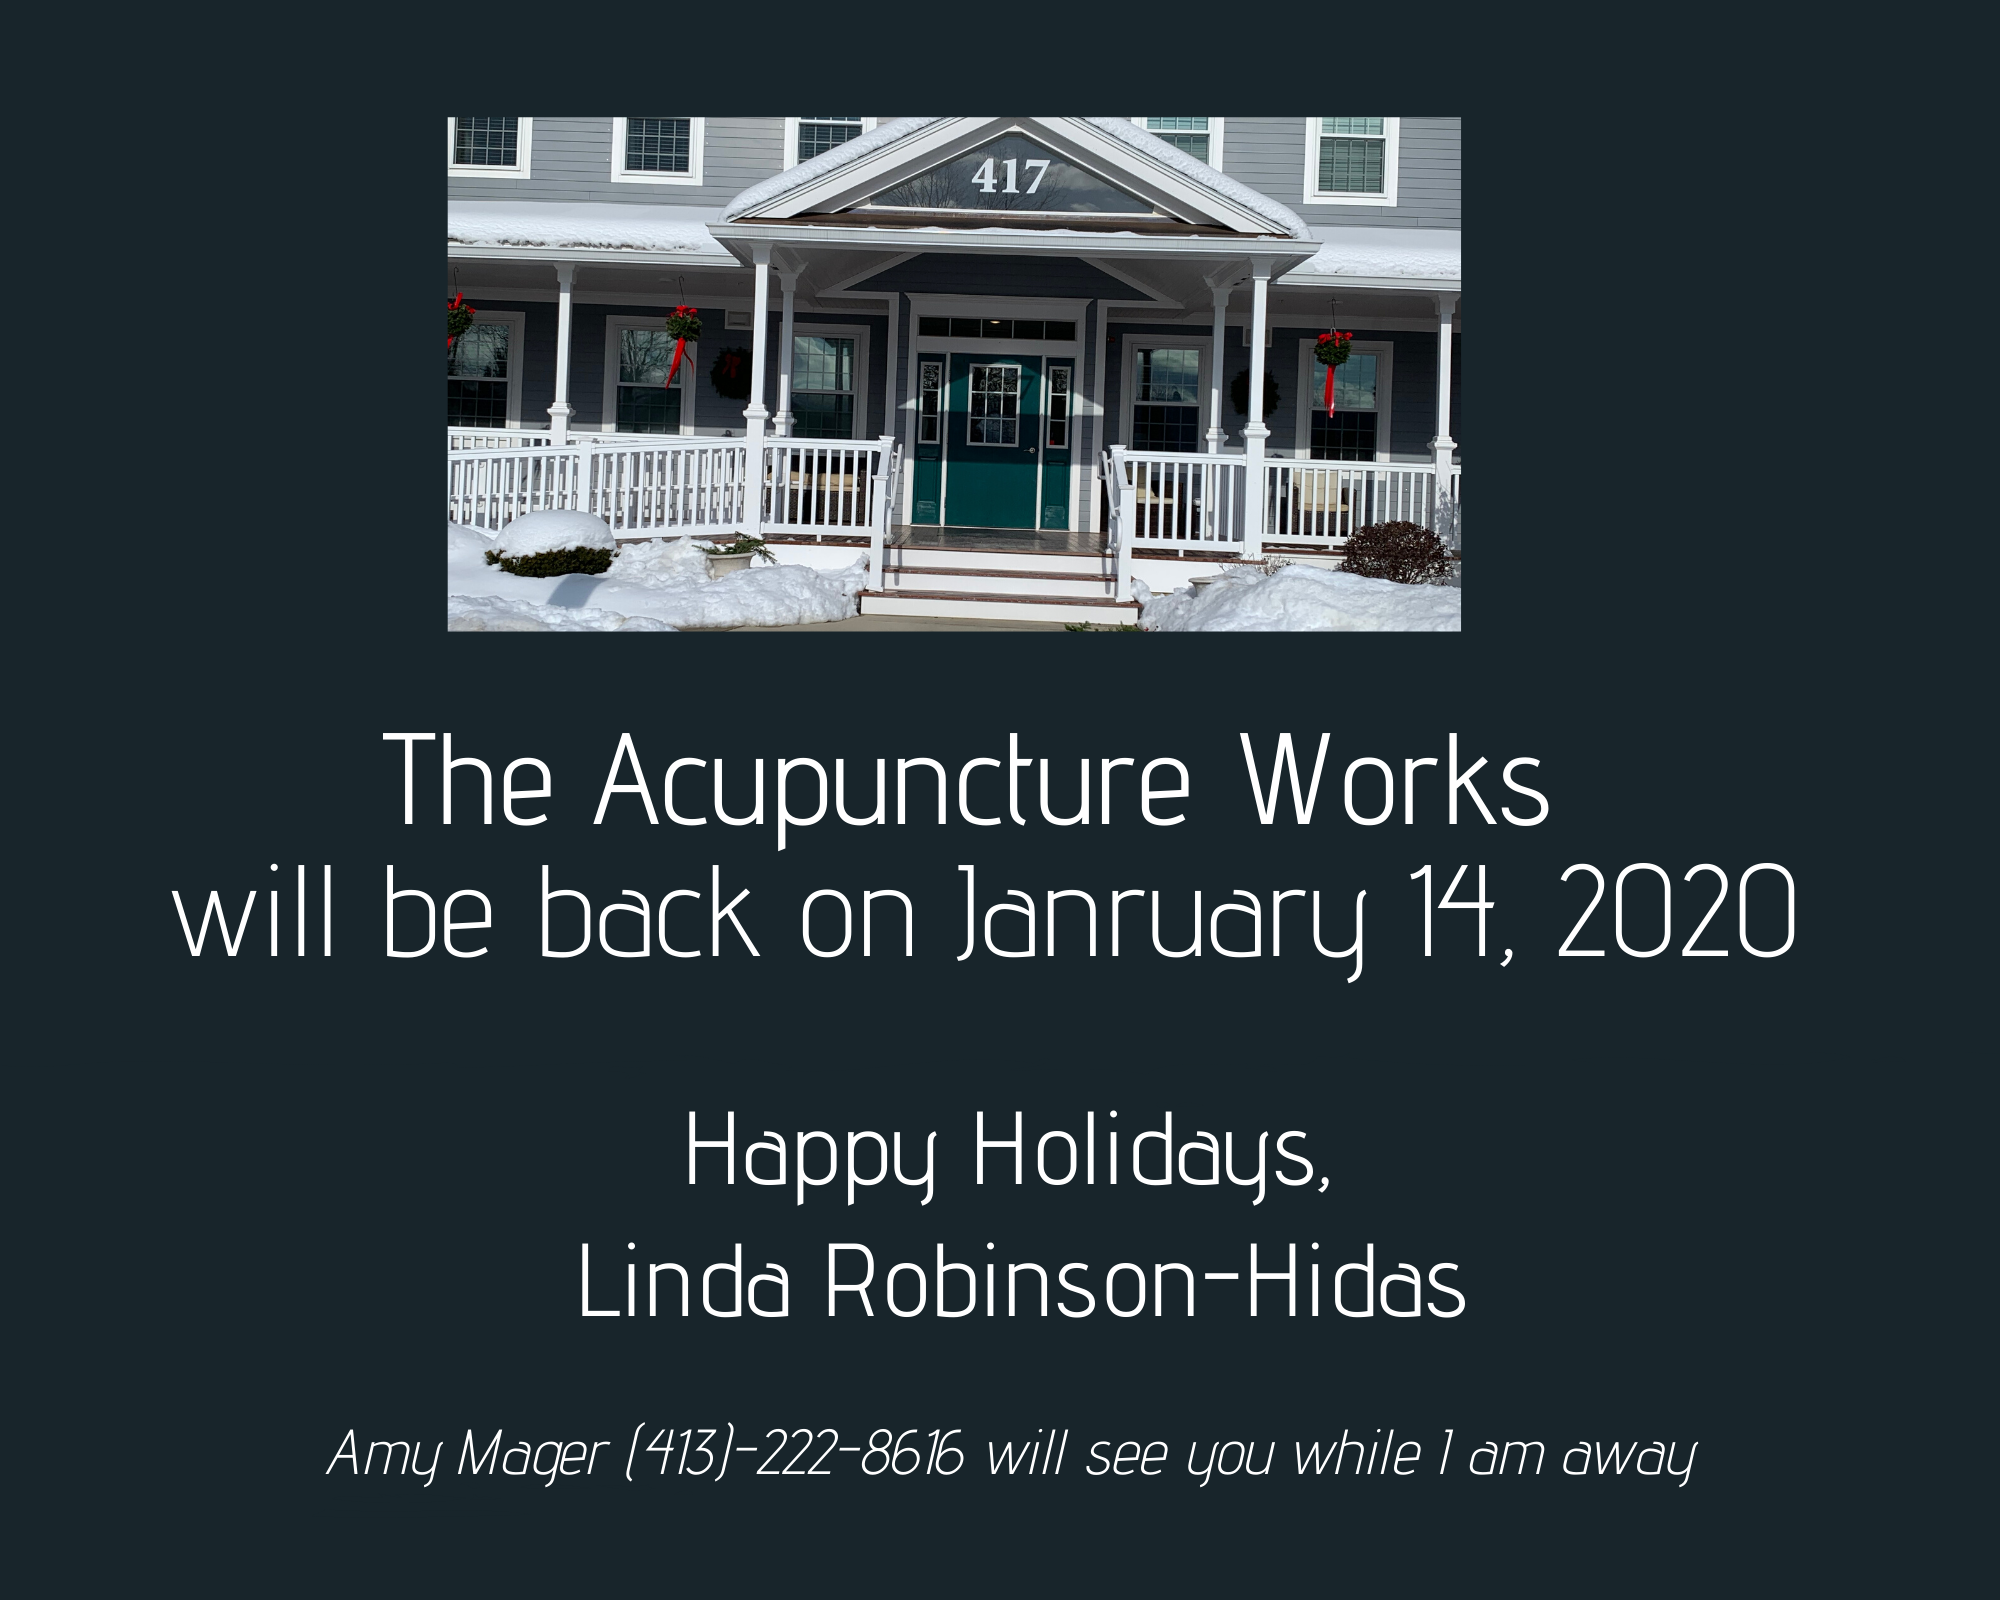 Acupuncture Works will be back on 1/14/2020